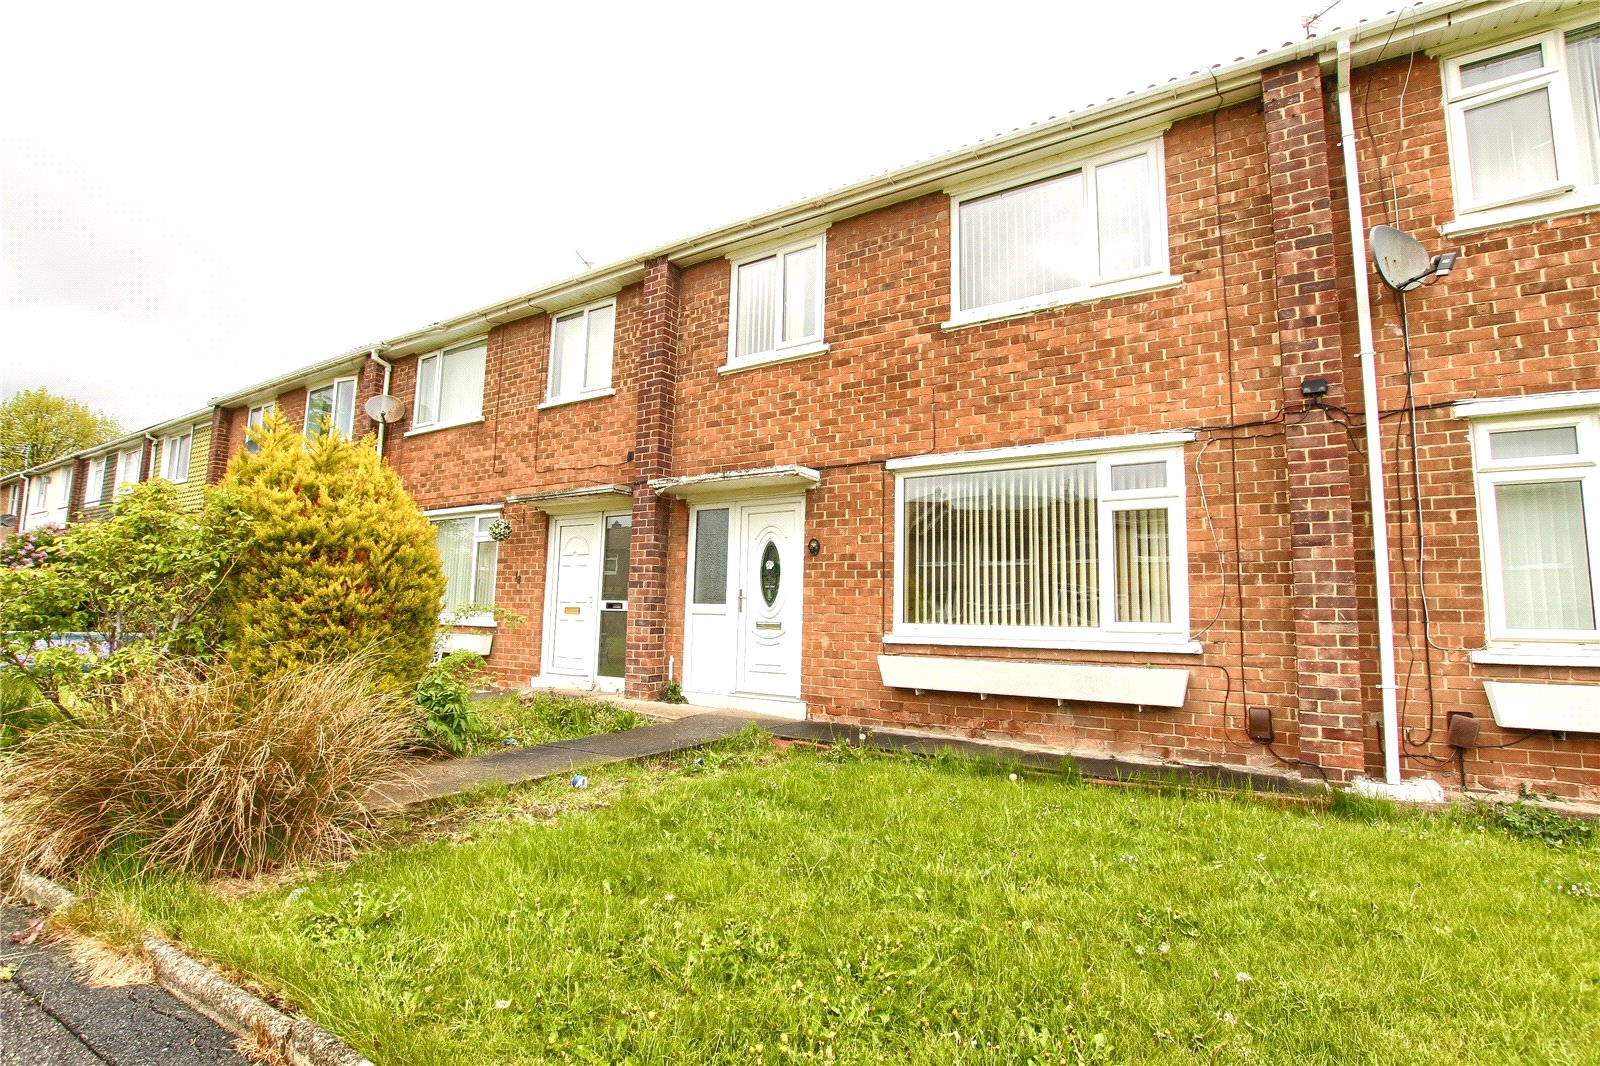 3 bed house to rent in Ashdown Way, Billingham - Property Image 1